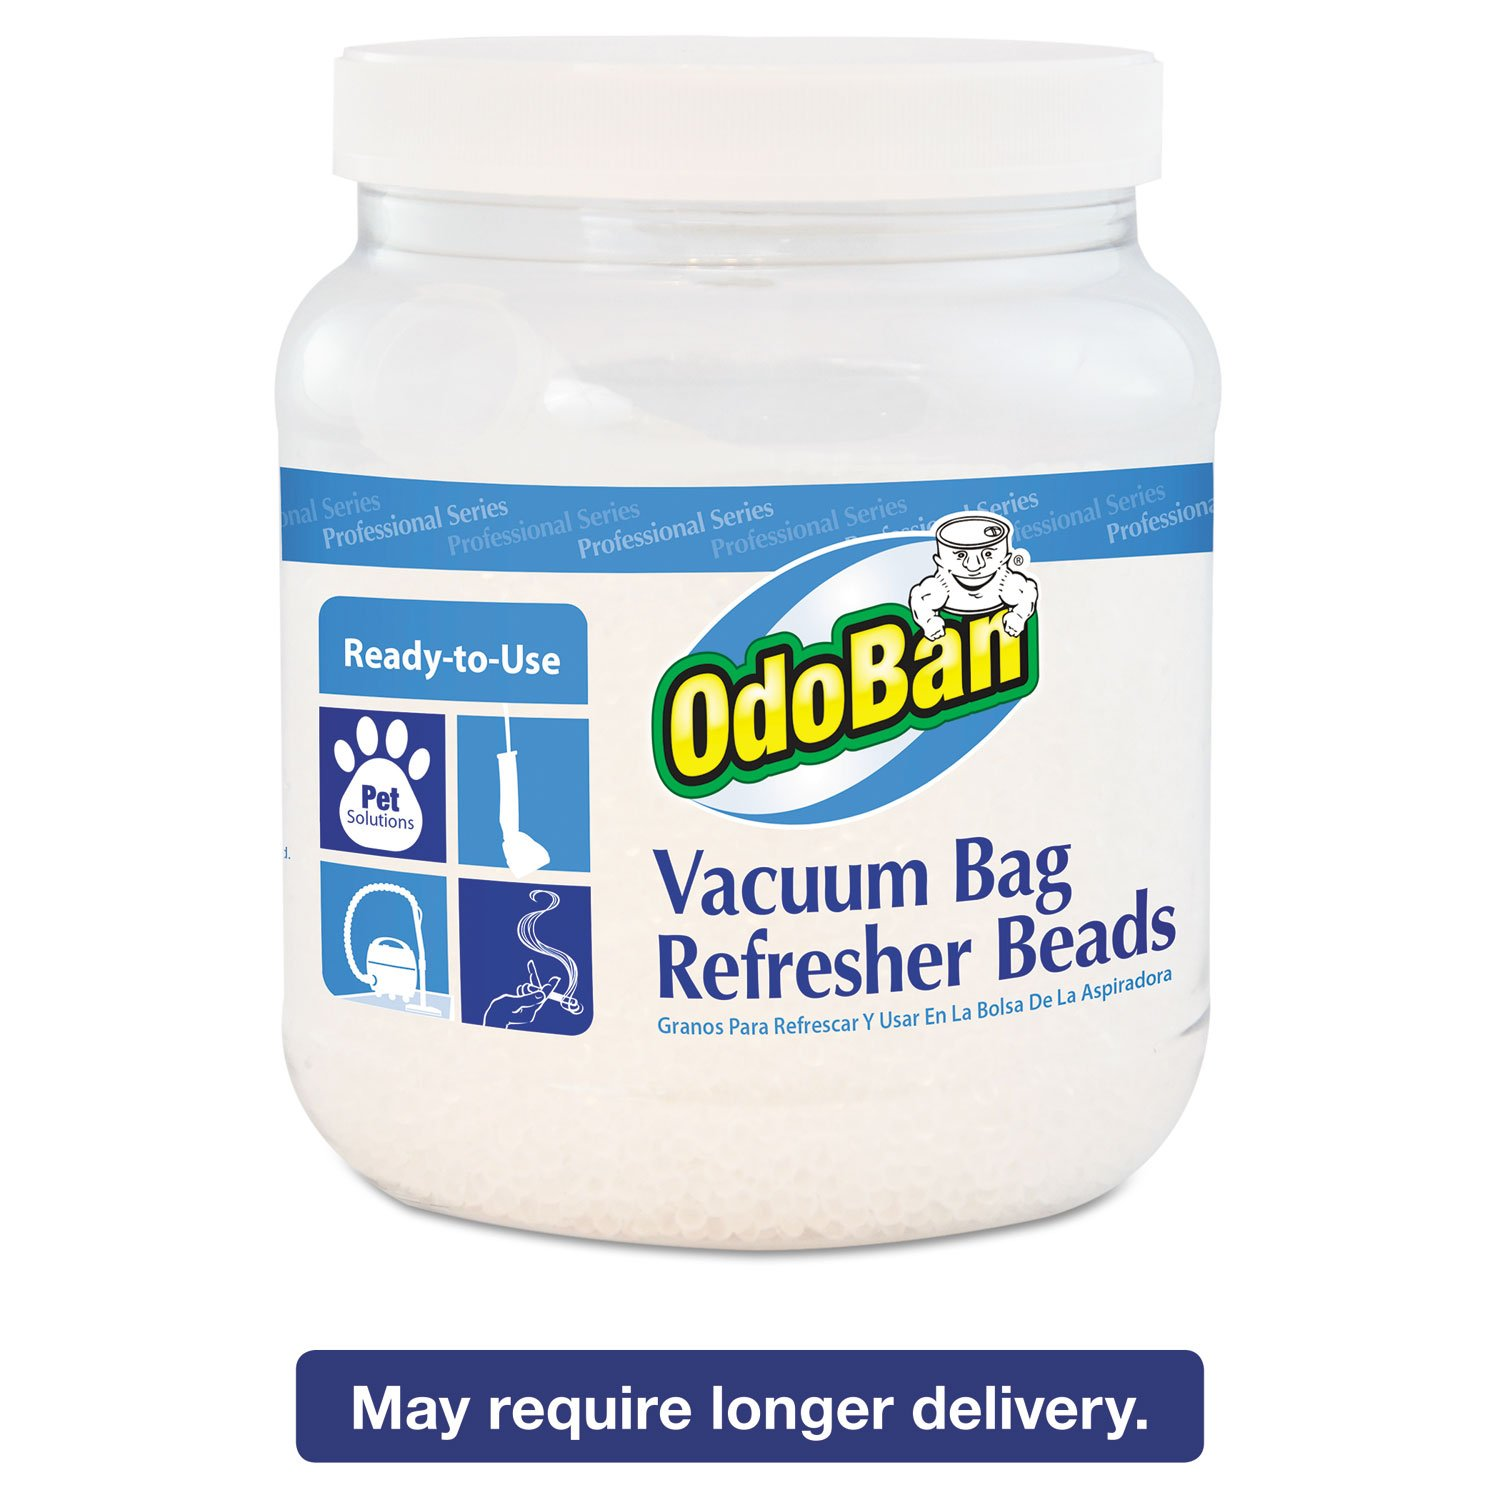 OdoBan Vacuum Bag Refresher Beads, Fresh Scent, 1.5 lb Jar, 12/Carton CCC 745A62-24Z12